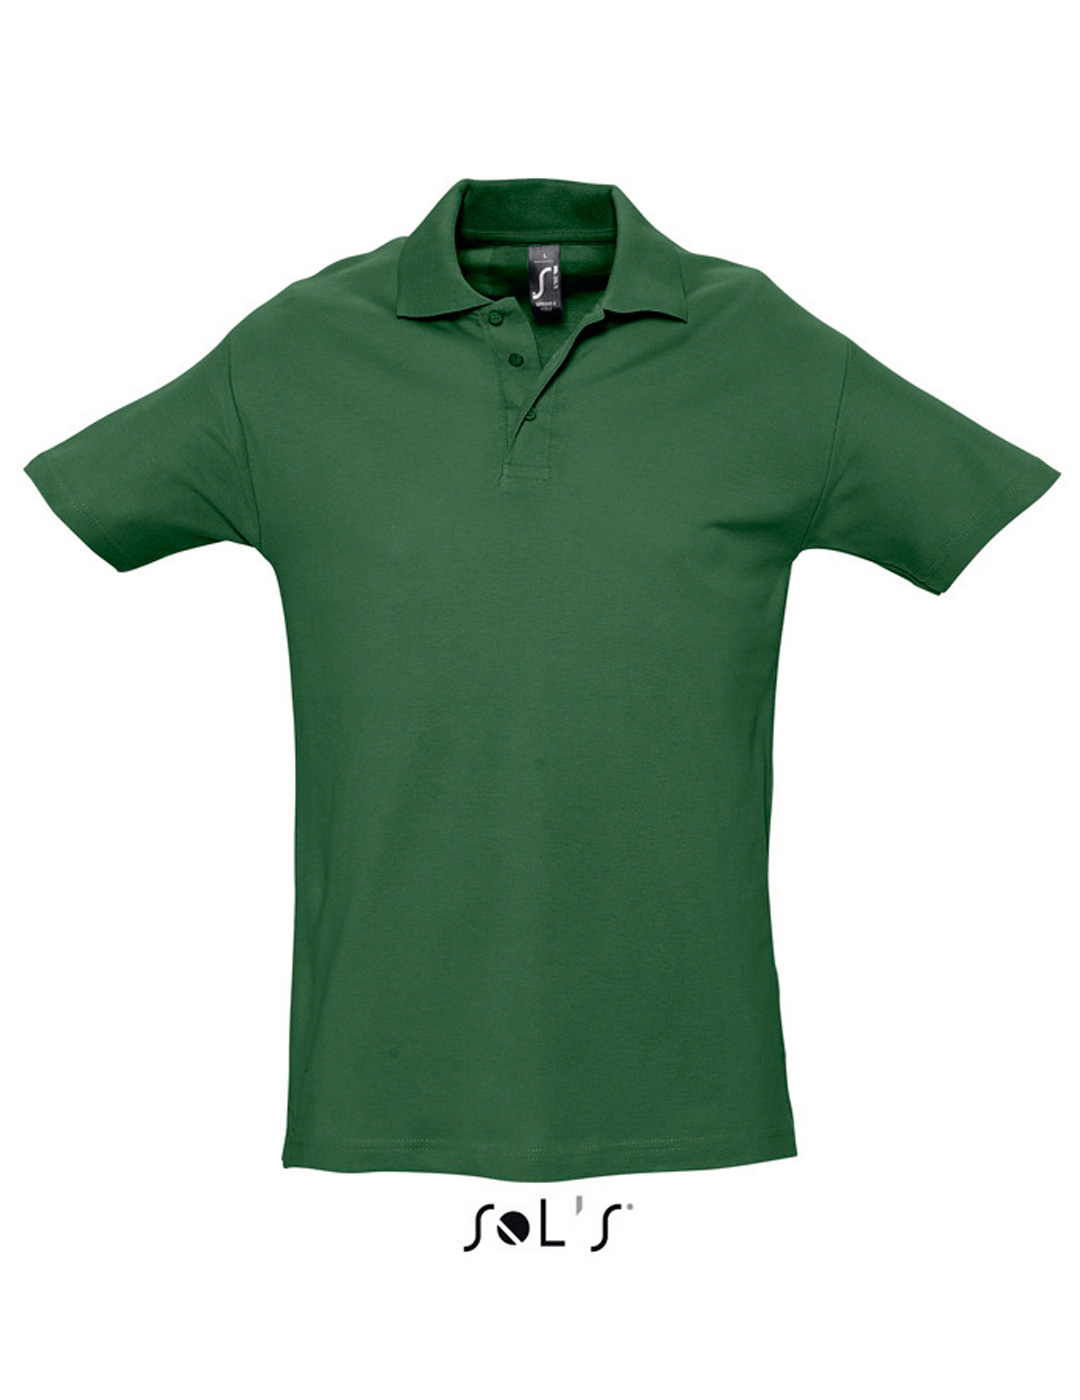 Spring ii 11362 golf green a